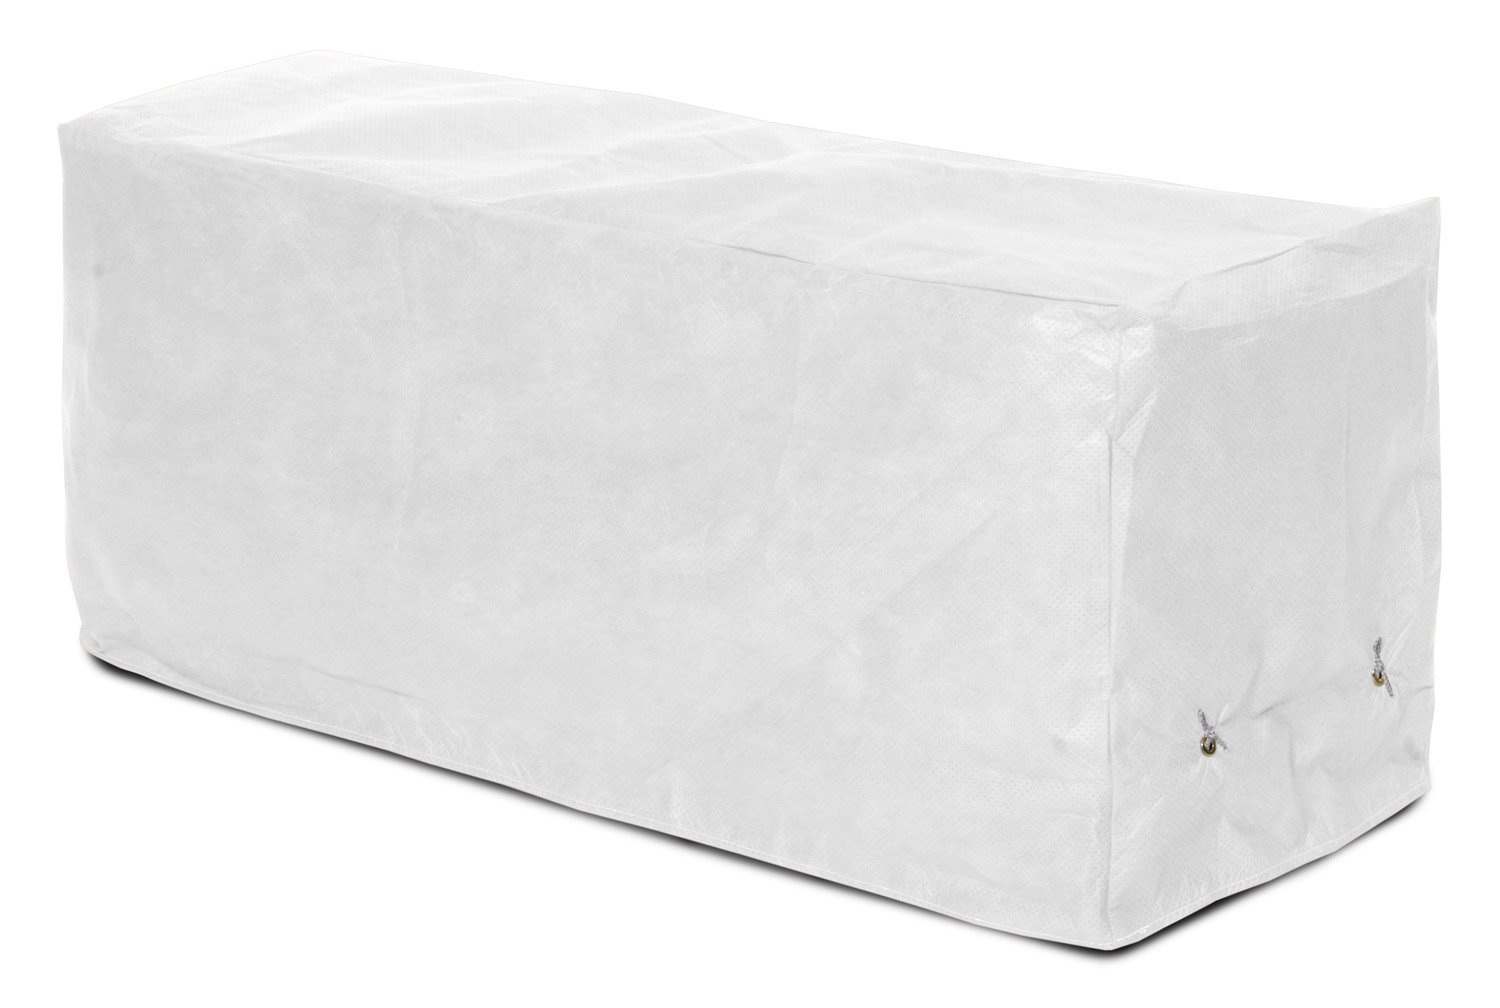 KoverRoos DuPont Tyvek 24207 8-Feet Bench Cover, 96-Inch Width by 25-Inch Diameter by 36-Inch Height, White by KOVERROOS